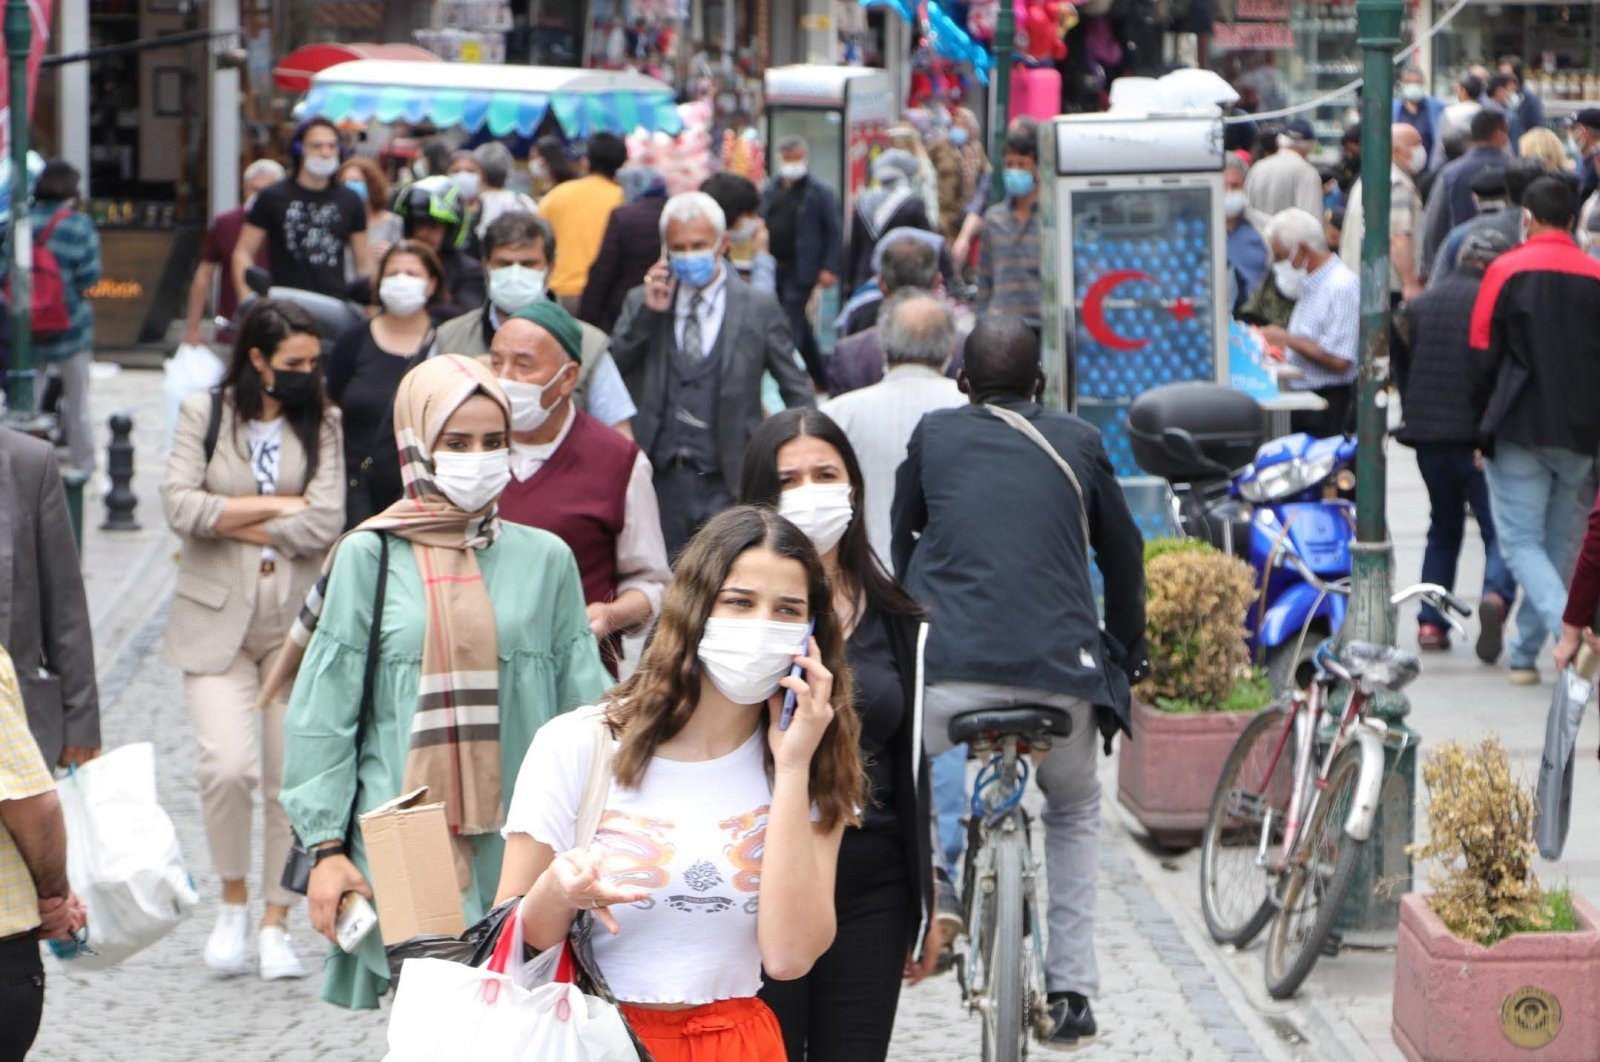 People wearing protective masks against COVID-19 walk on a street, in Eskişehir, central Turkey, May 19, 2021. (DHA PHOTO)